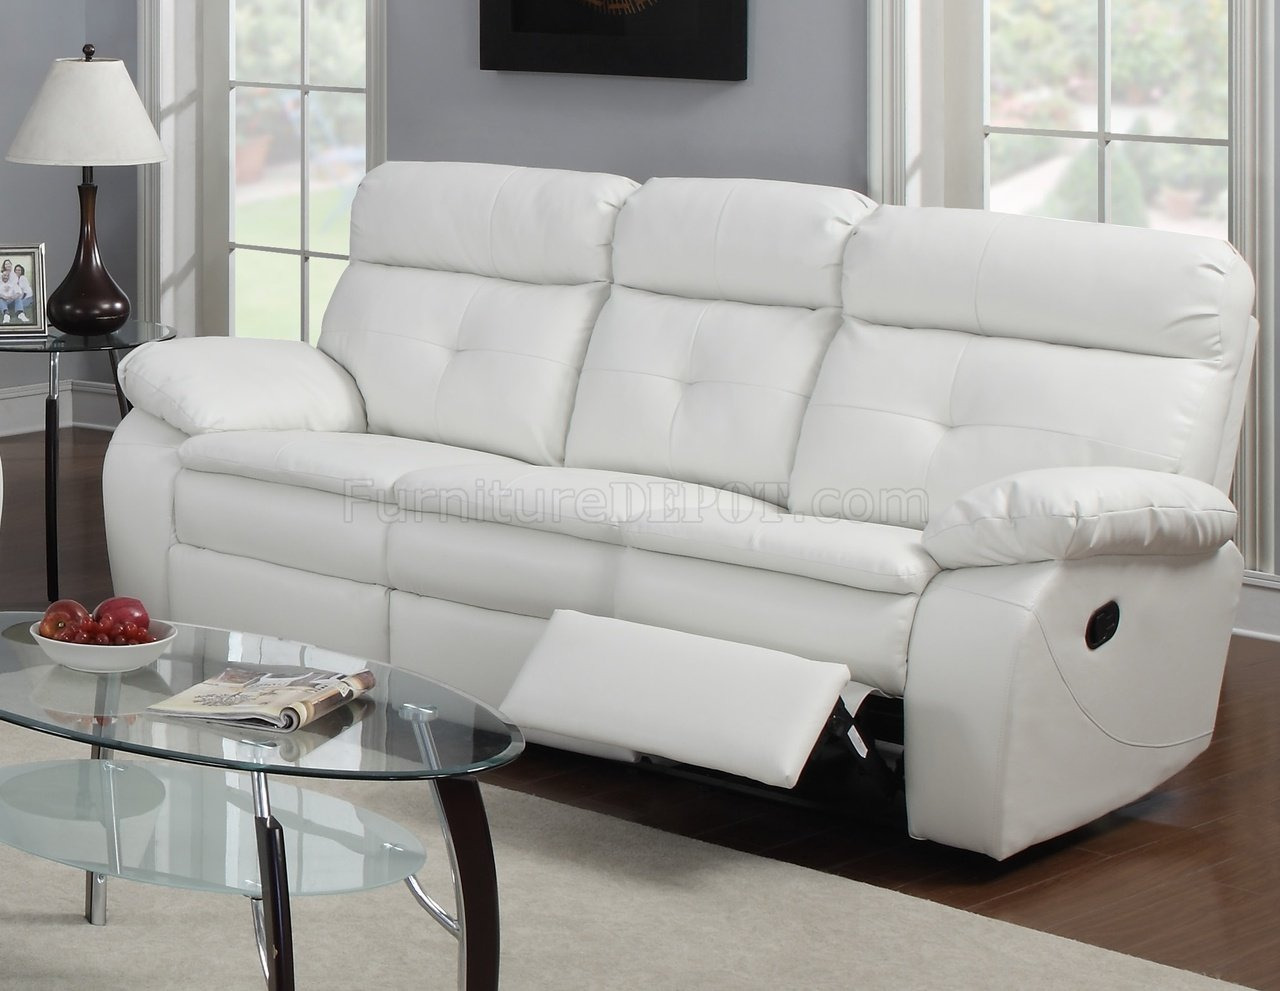 g577a reclining sofa loveseat in white bonded leather by glory gys